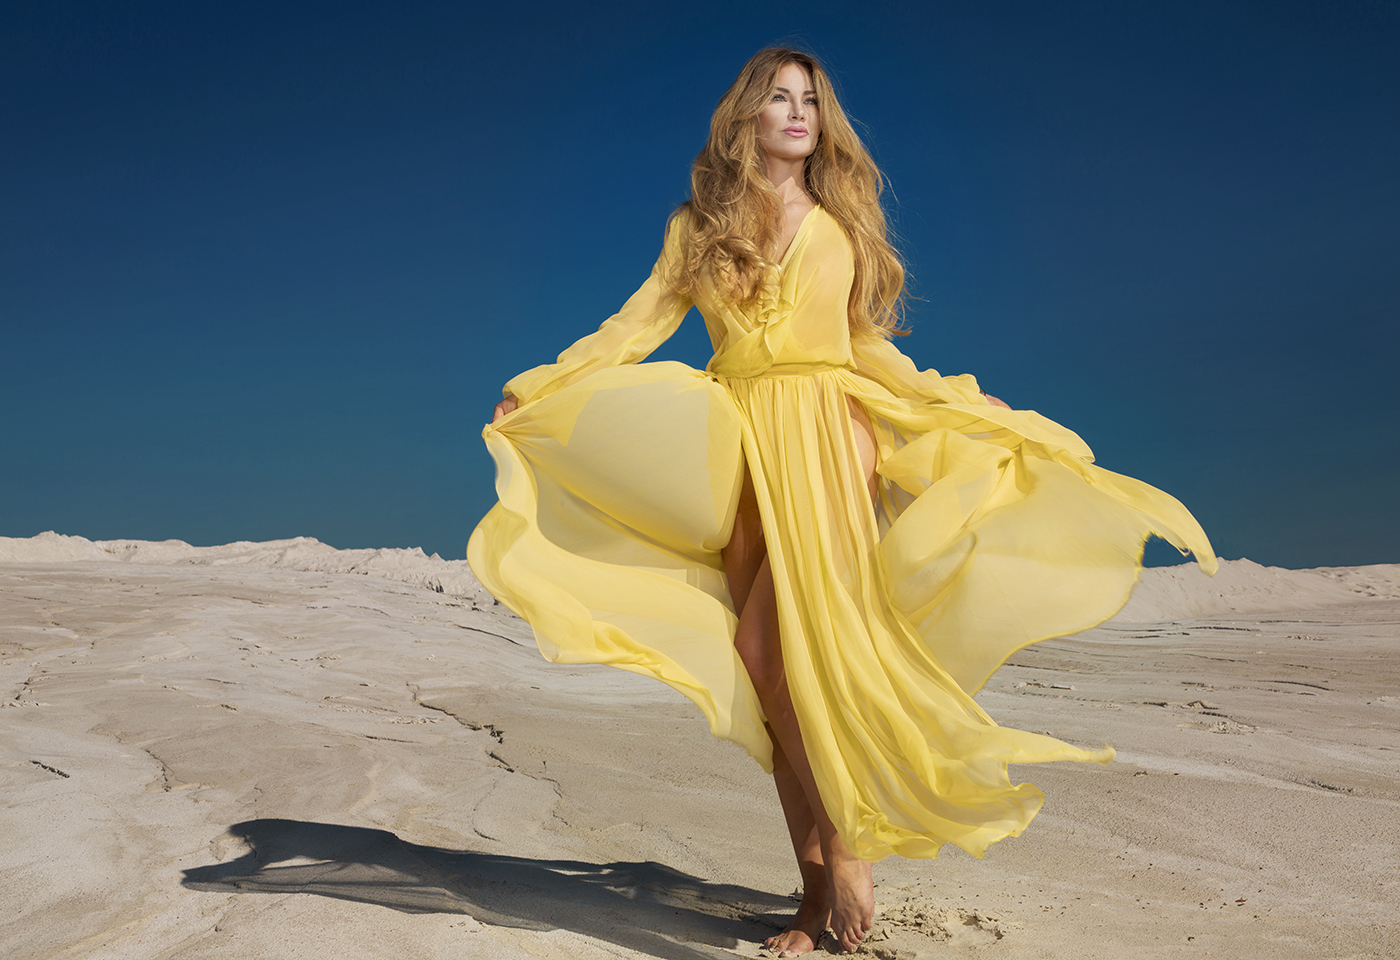 fashion image women yellow dress sand dune